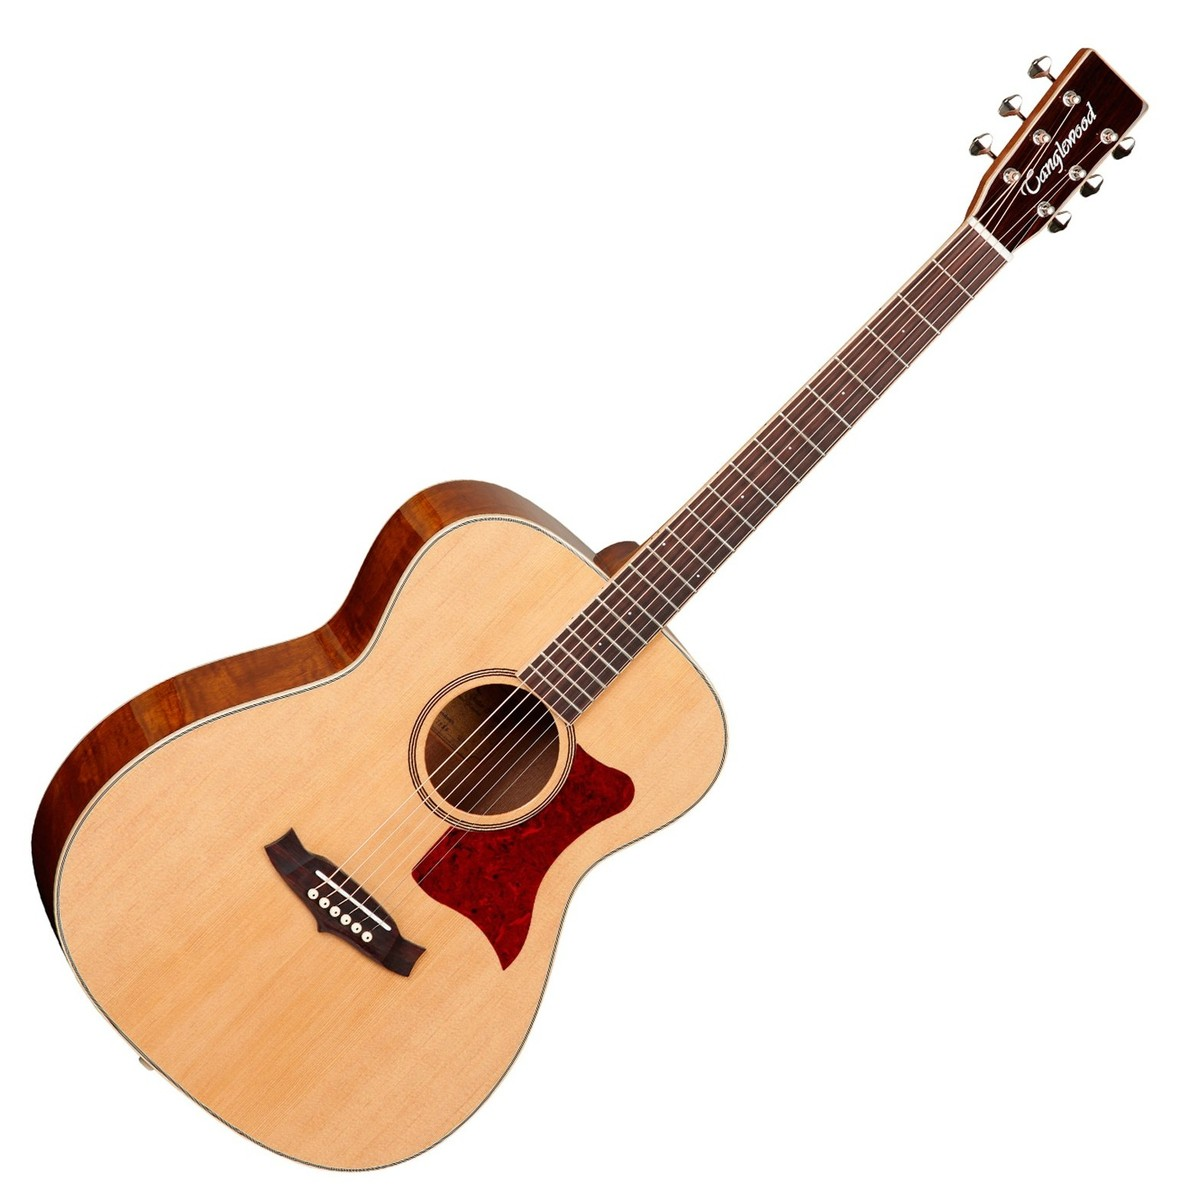 Tanglewood tw70 eg sundance natural orchestra acoustic for The tanglewood